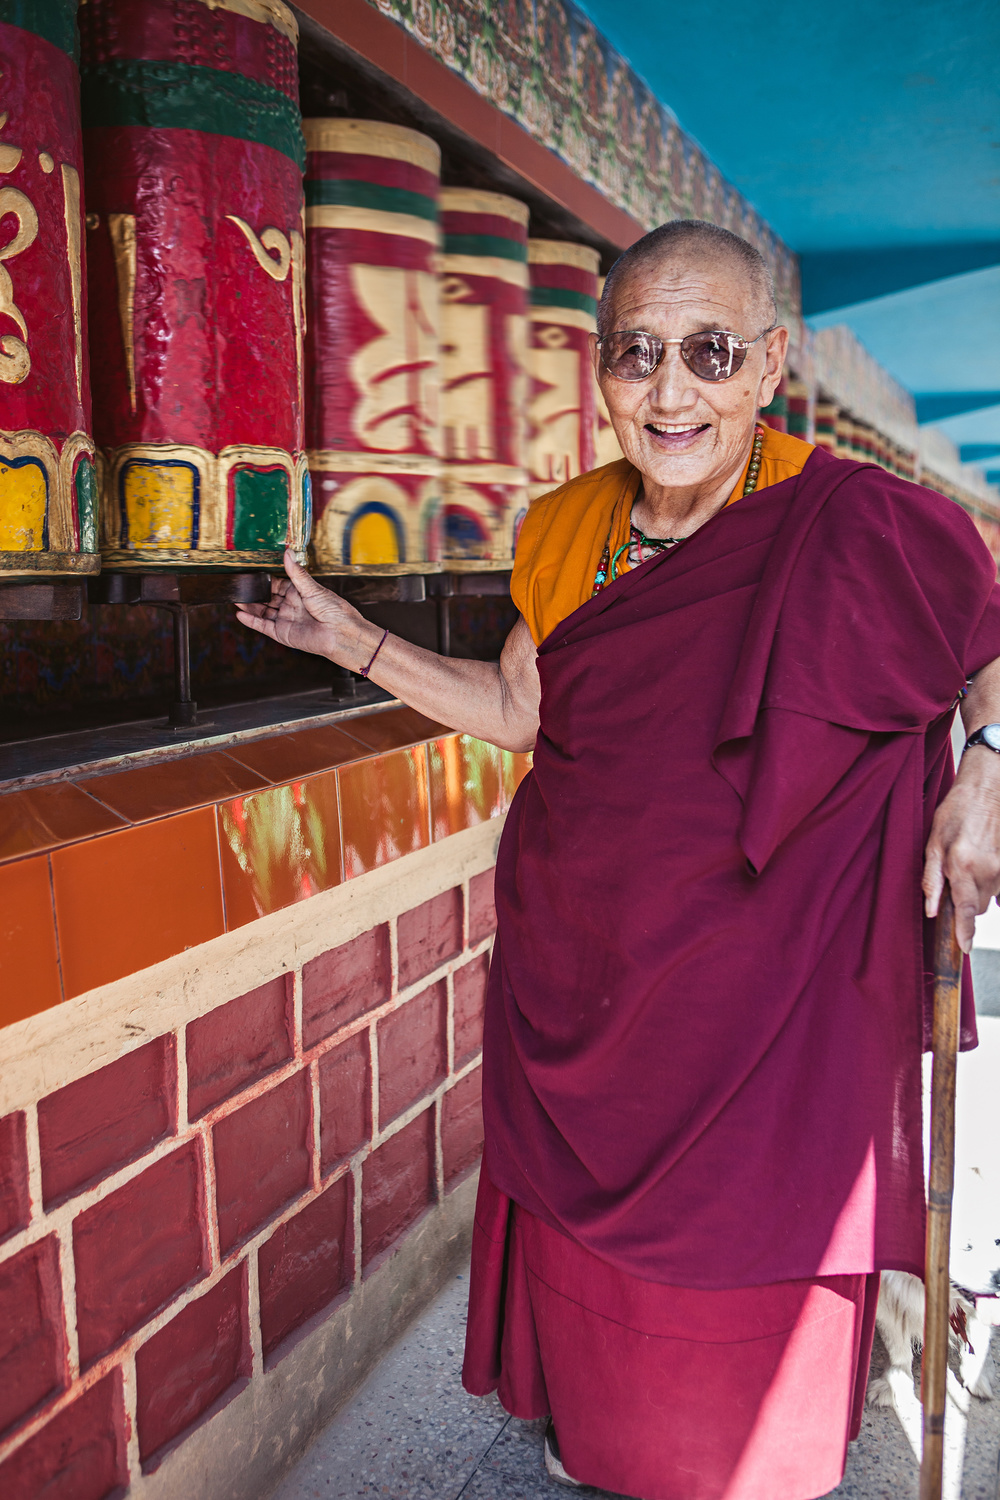 CindyGiovagnoli_India_McCleodganj_travel_photographer_DalaiLama-007.jpg